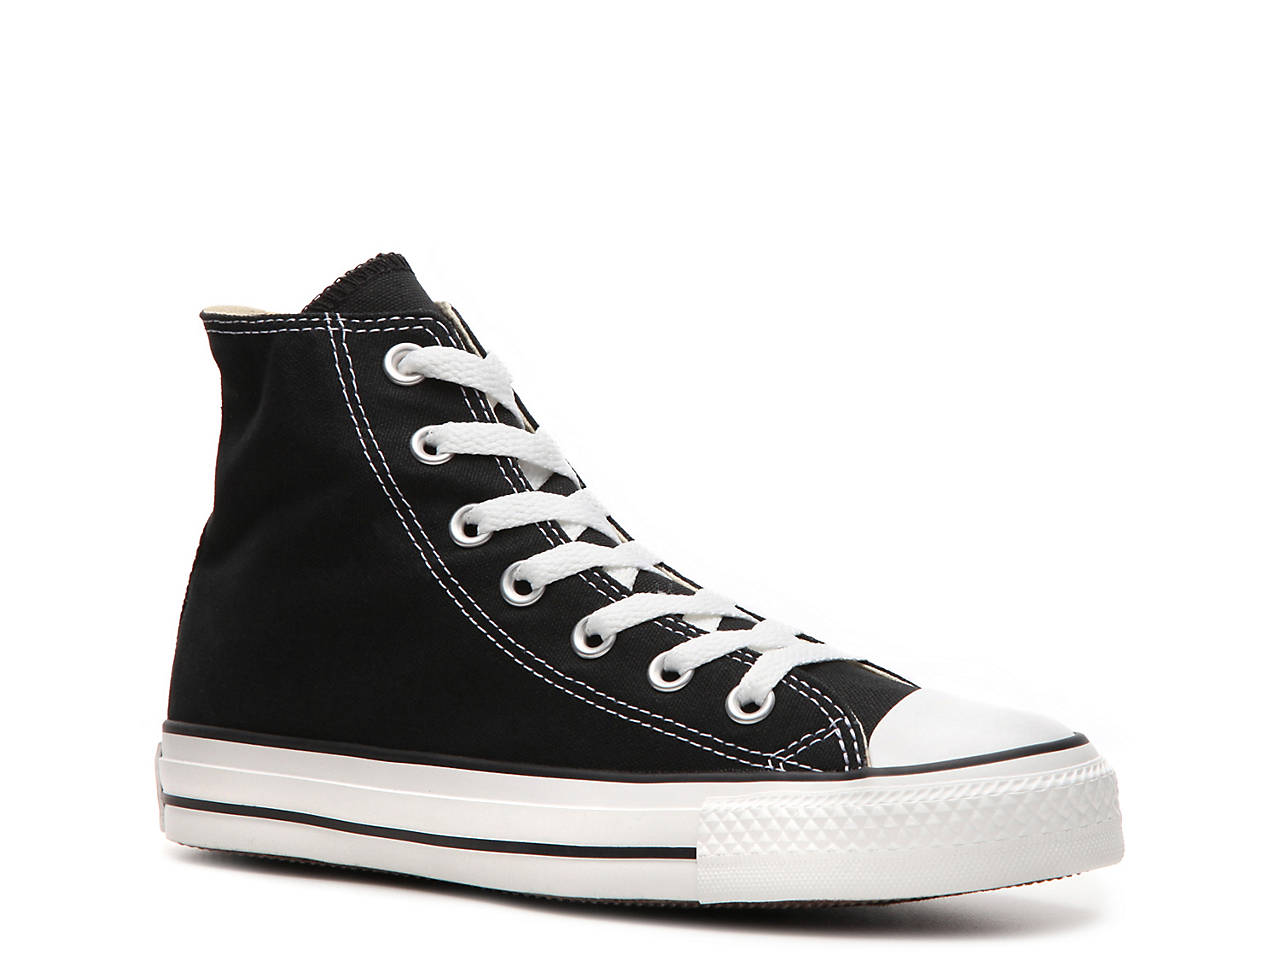 108a5164f29 Converse Chuck Taylor All Star High-Top Sneaker - Women s Women s ...